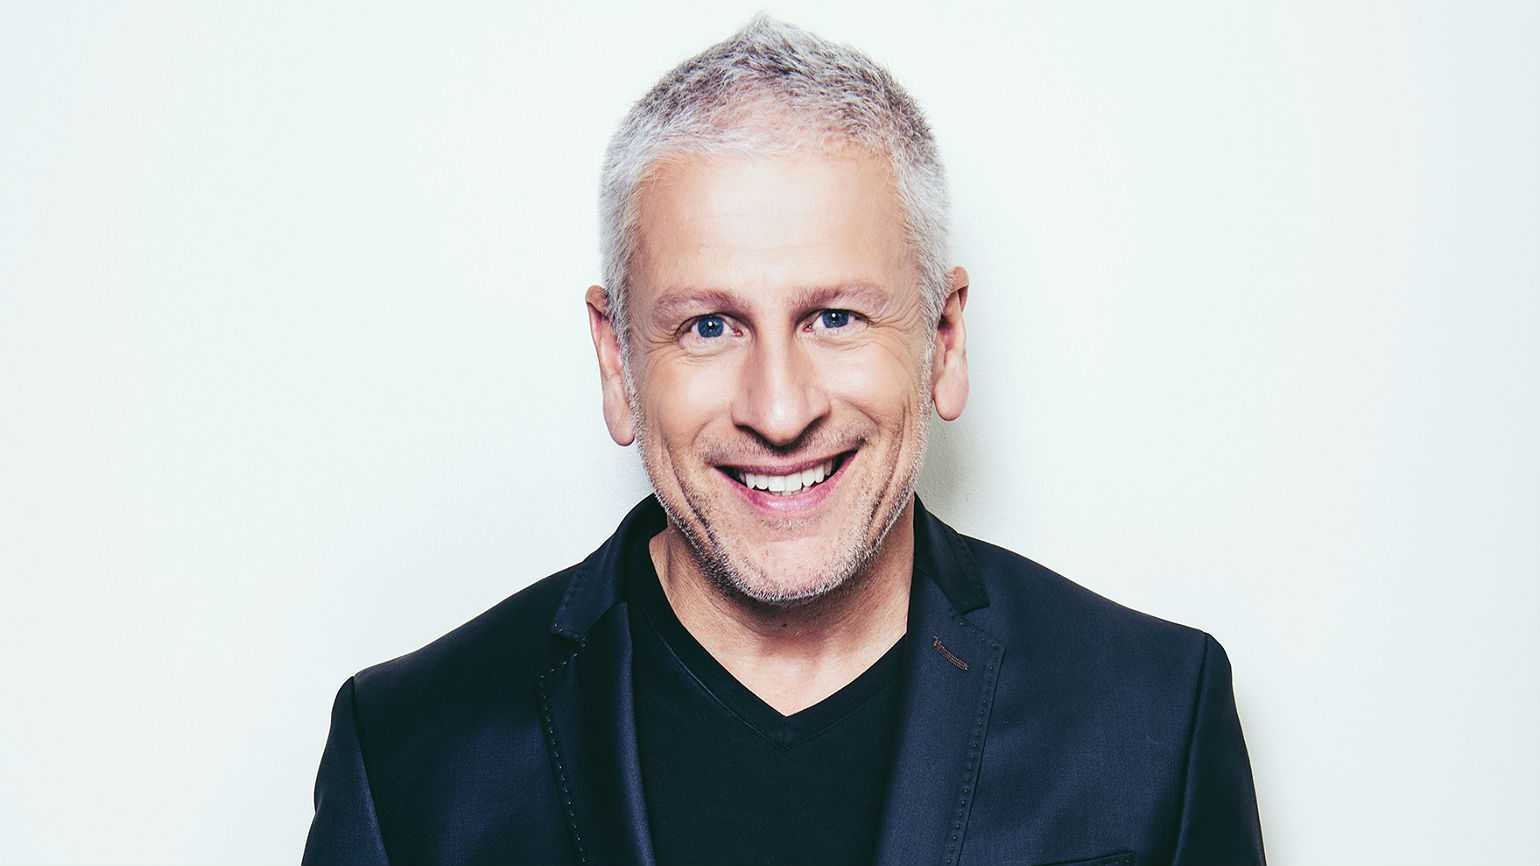 Louie Giglio Gets Real about Battling Depression and Anxiety